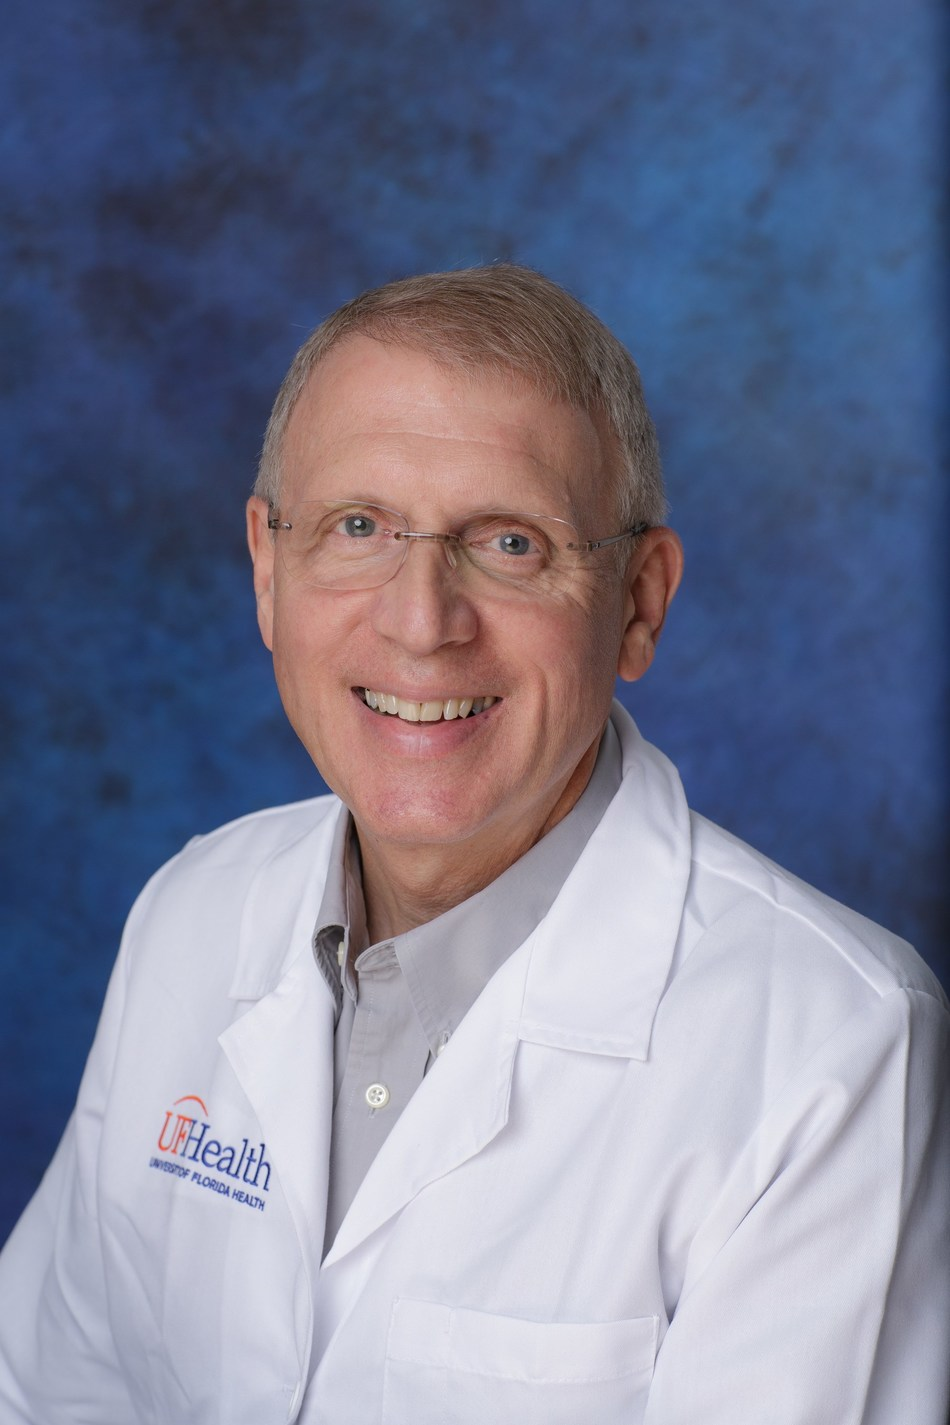 WellCare Names Dr. Donald Fillipps Medical Director for Children's Medical Services Health Plan in Florida